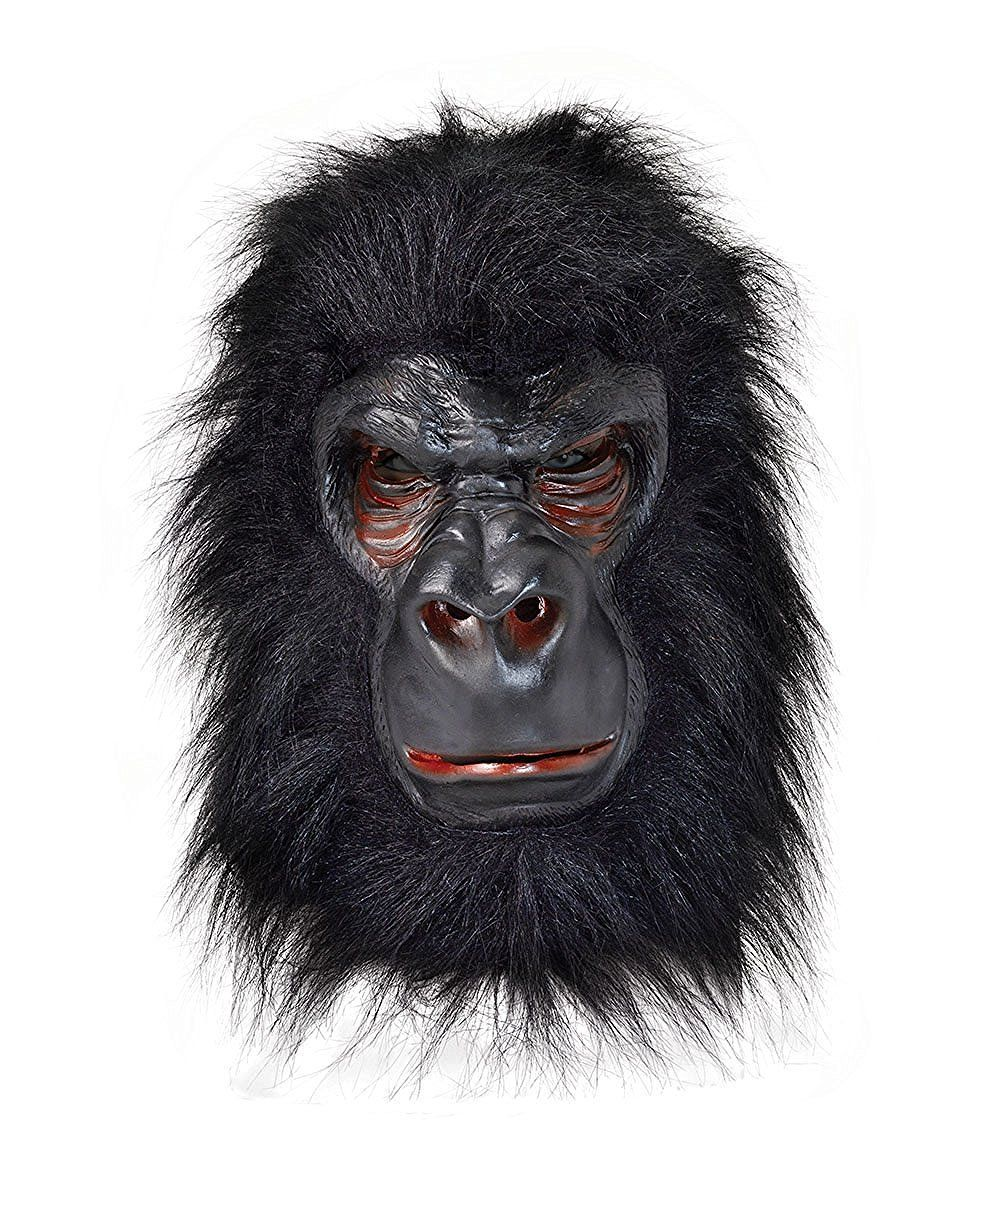 Rubie's BM371 - Gorilla Latex Mask, One Size: Bristol Novelty: Amazon.co.uk: Toys & Games